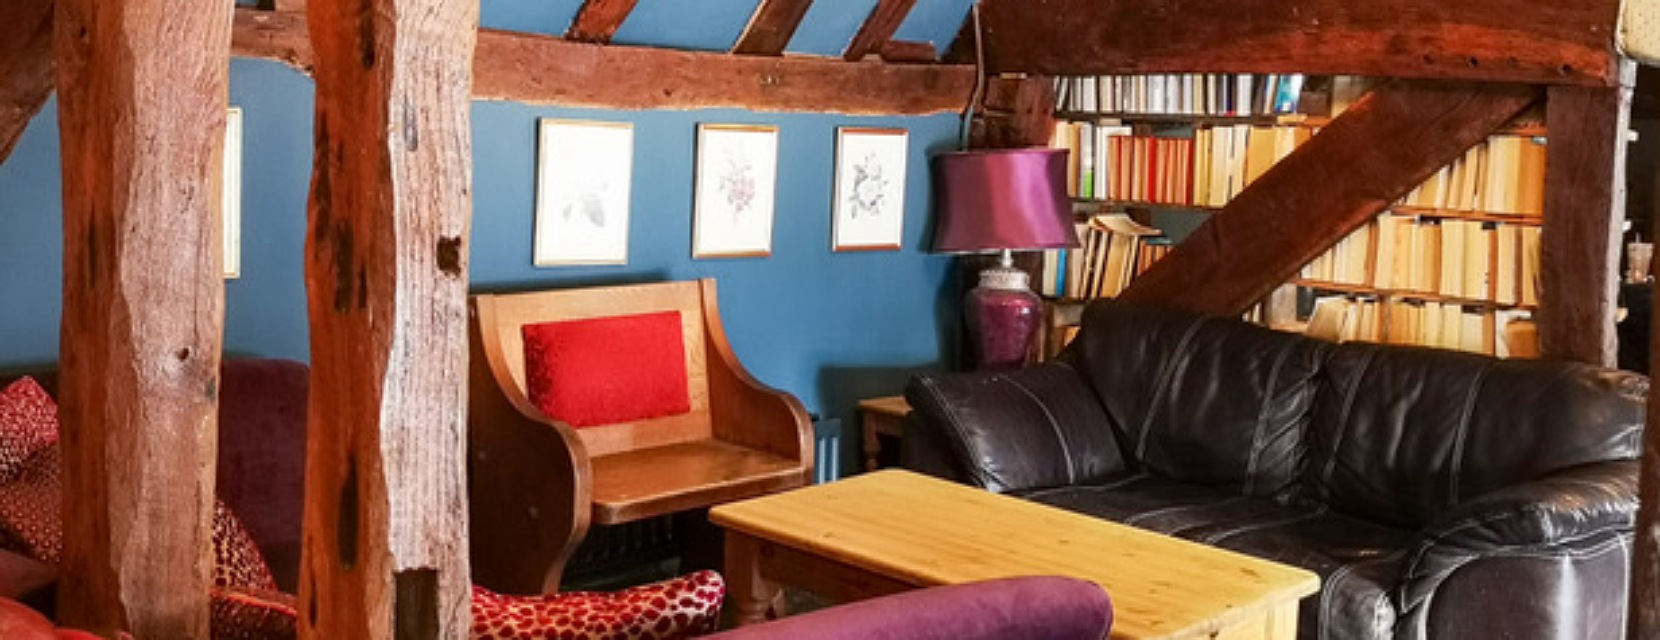 RECOMMENDATION | Billy Bob's Parlour & Diner – The Yorkshire Dales 201